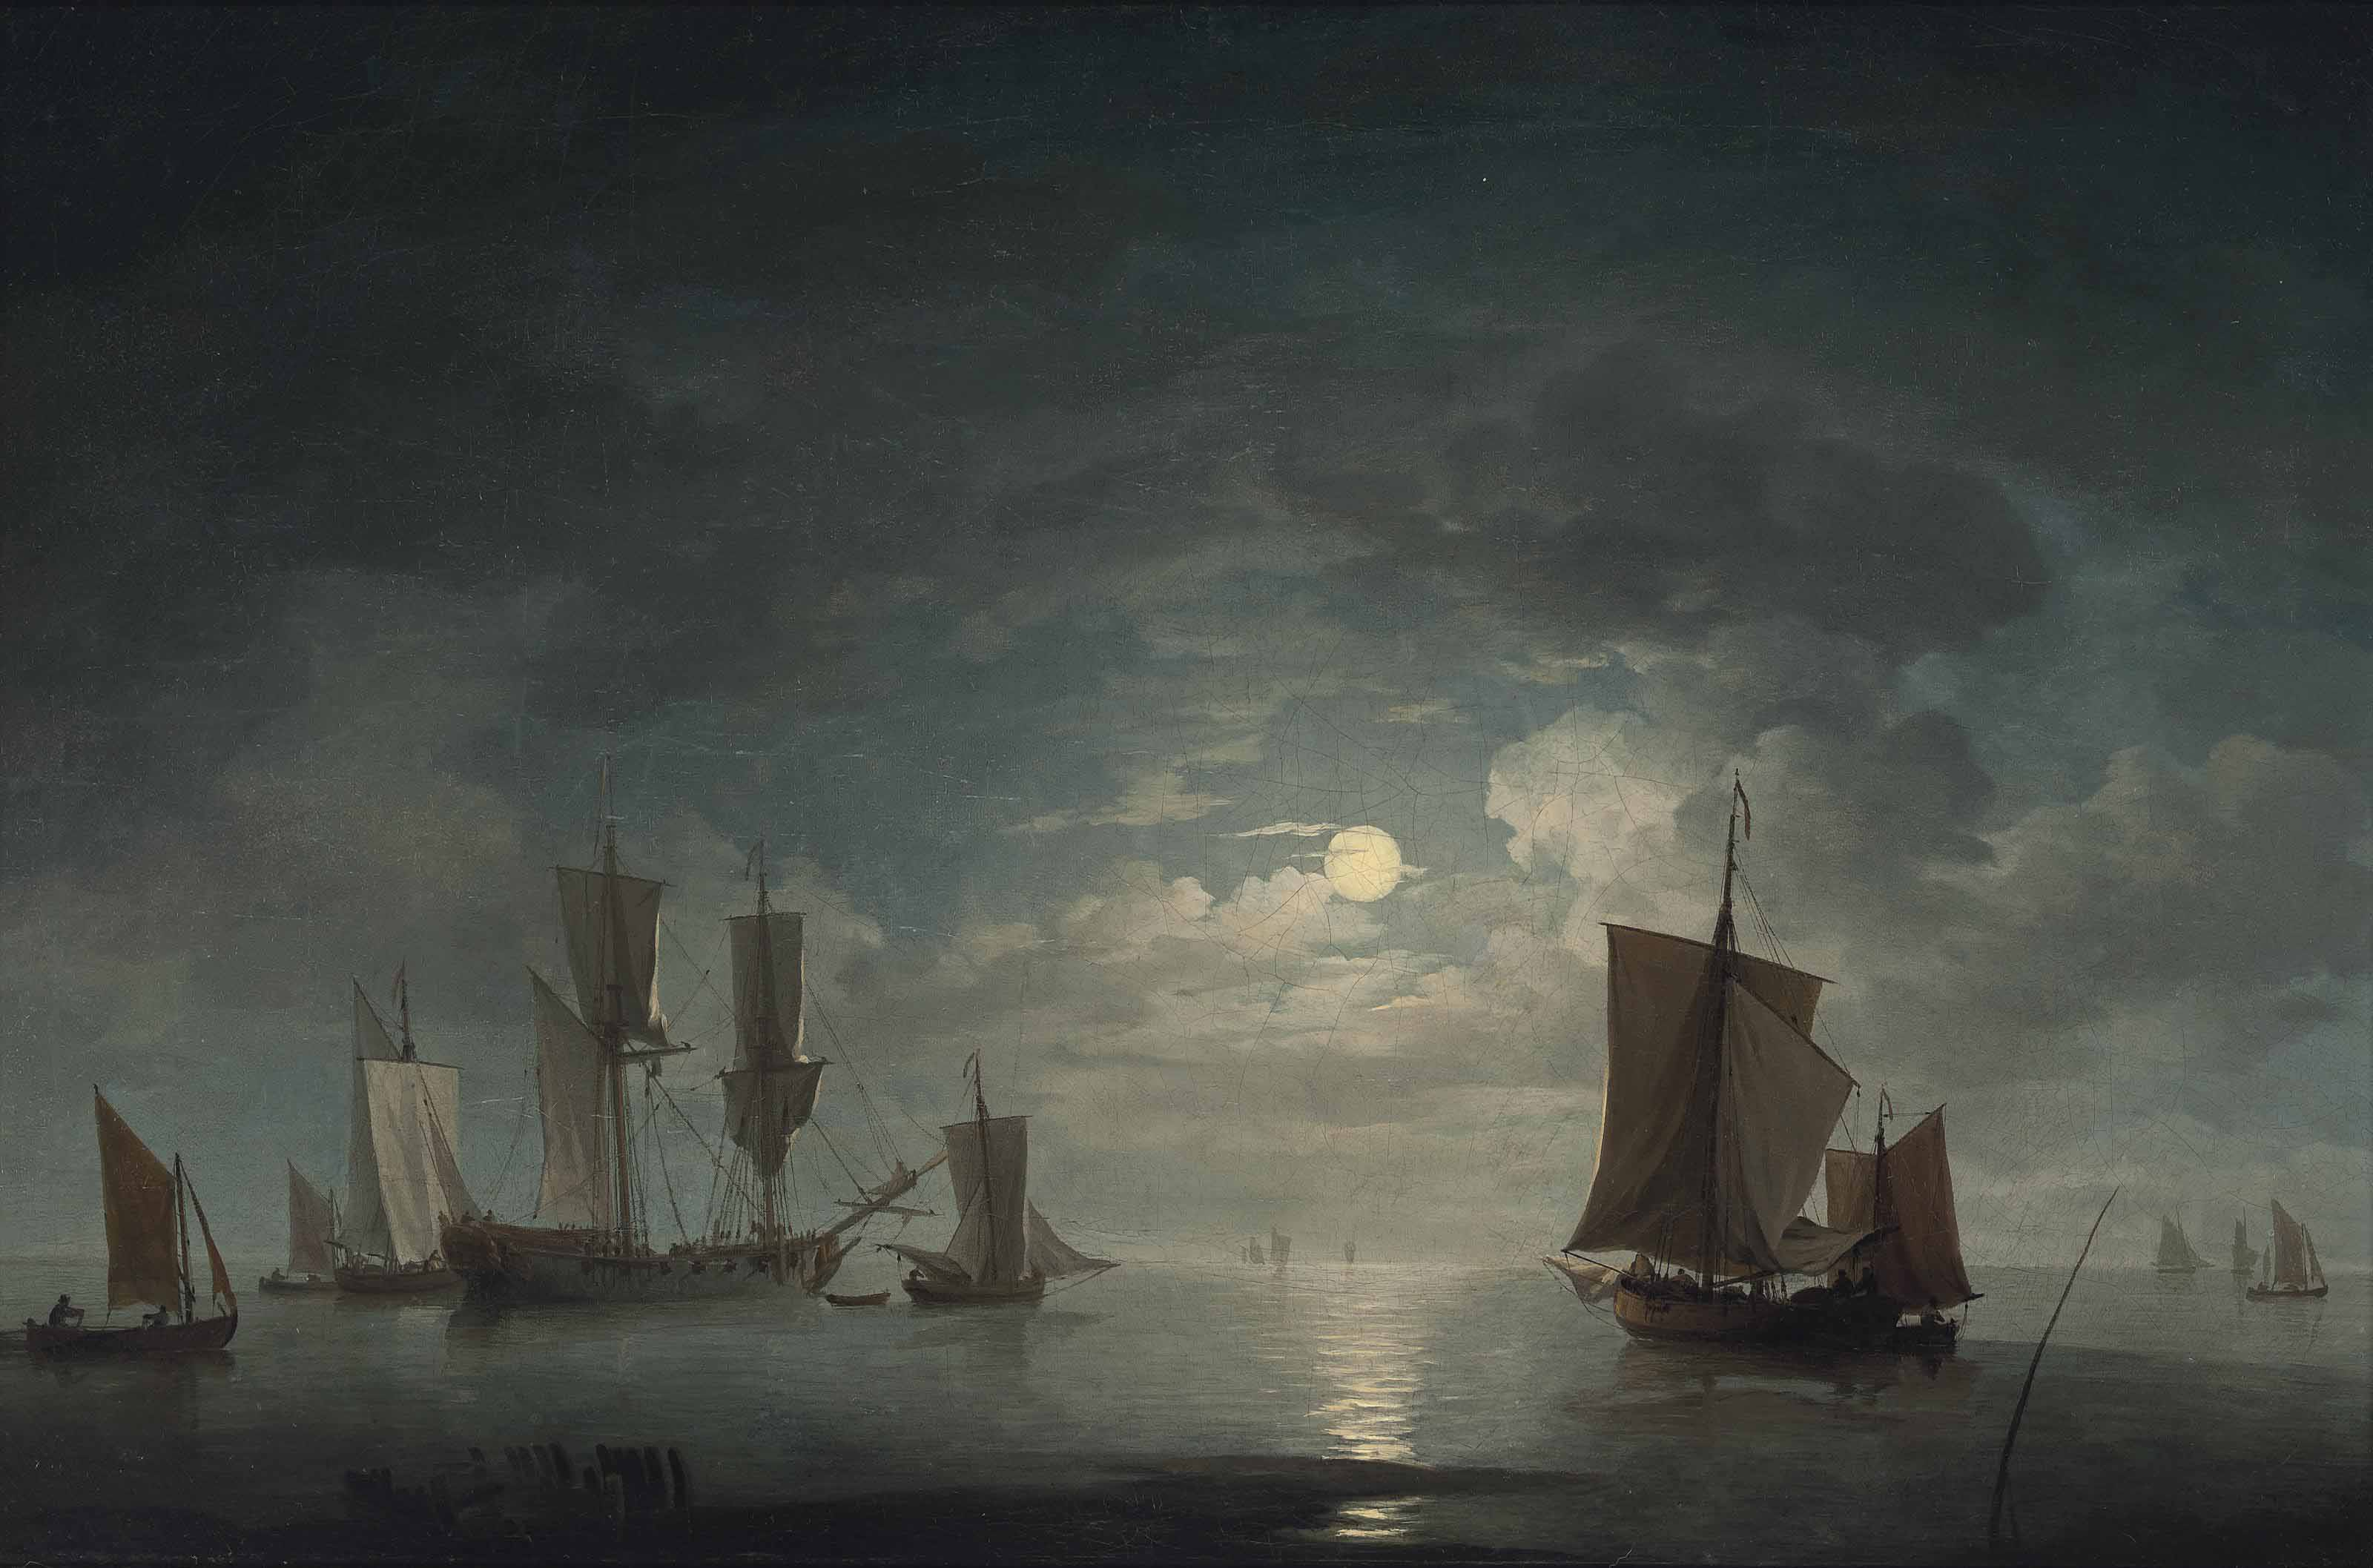 An English merchant brig and coastal craft becalmed by moonlight